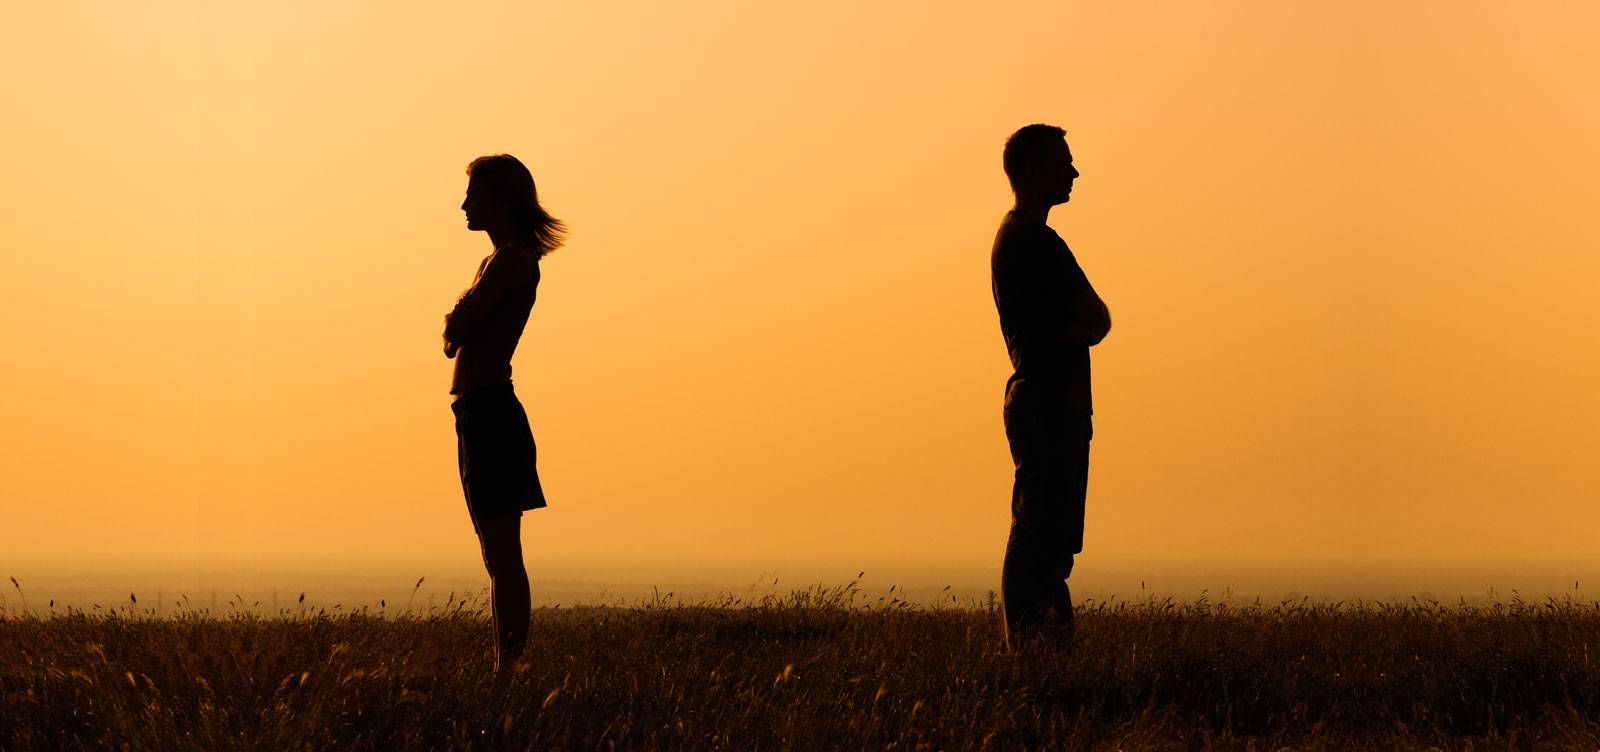 Relationships outside of marriage